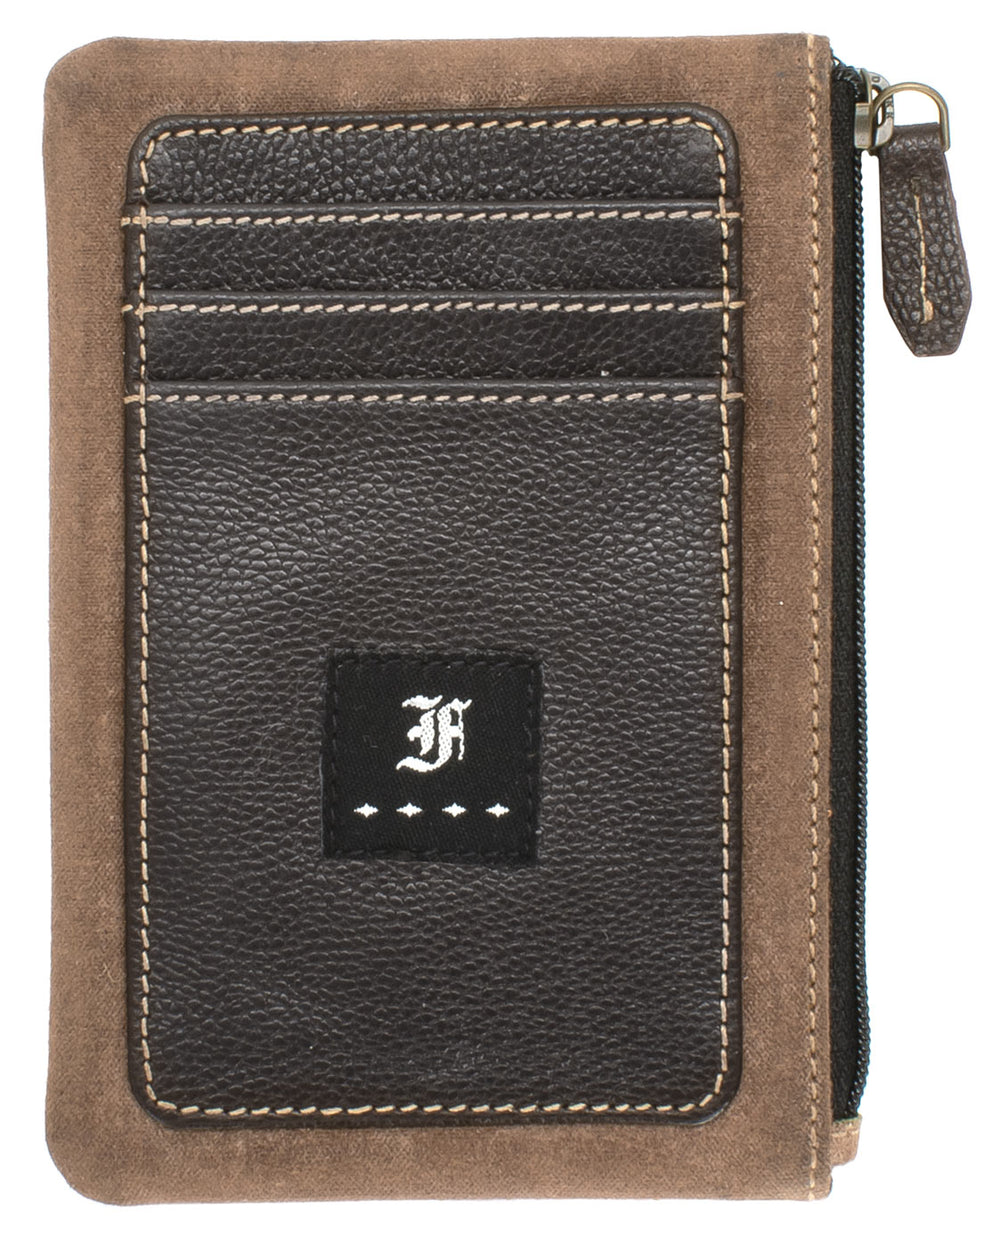 Franklin Christoph Zippered Card Wallet